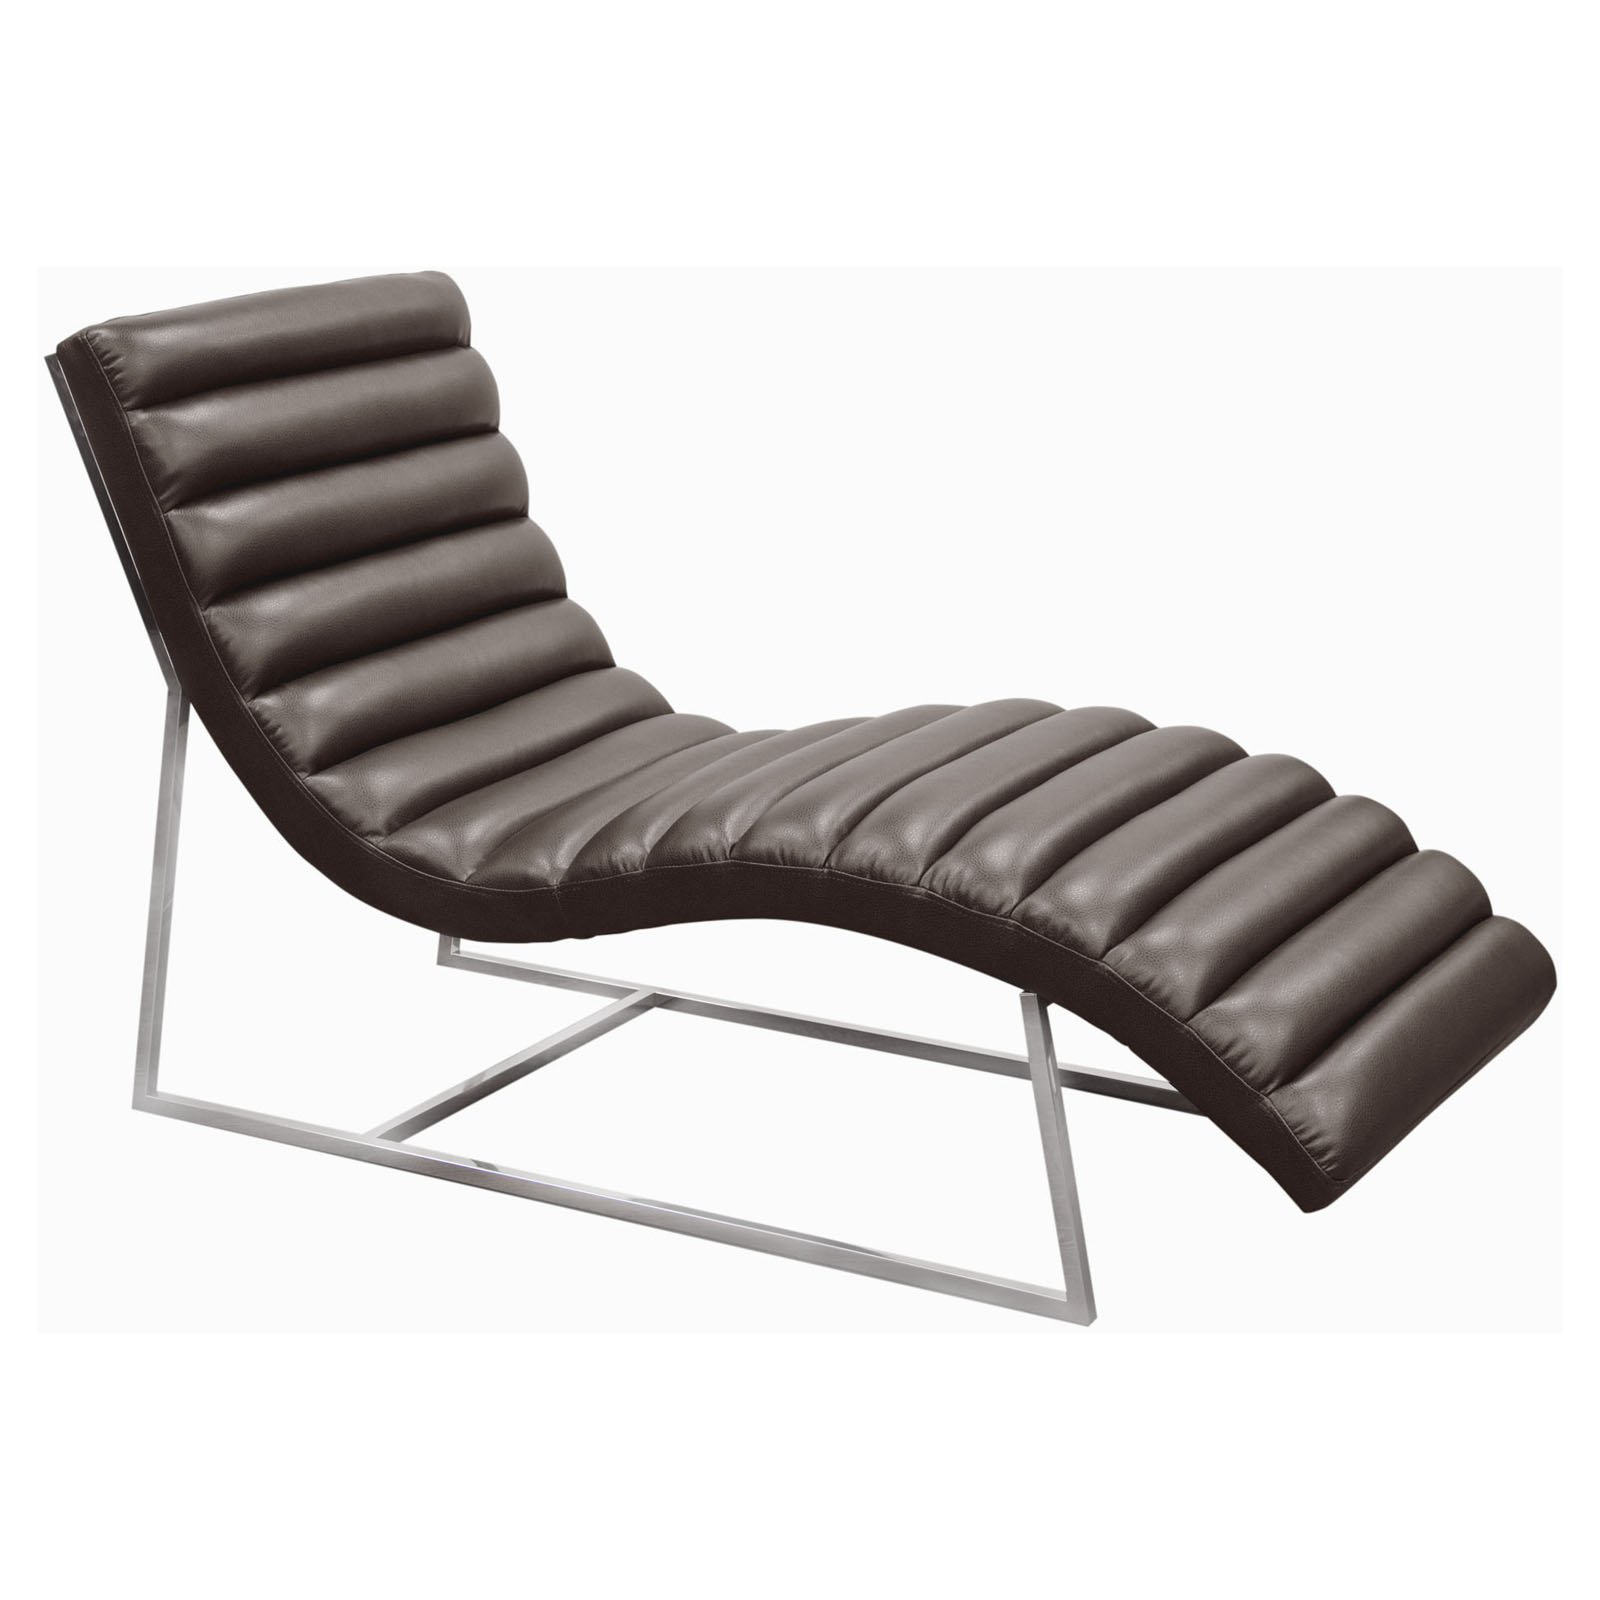 Diamond Sofa Bardot Chaise Lounge